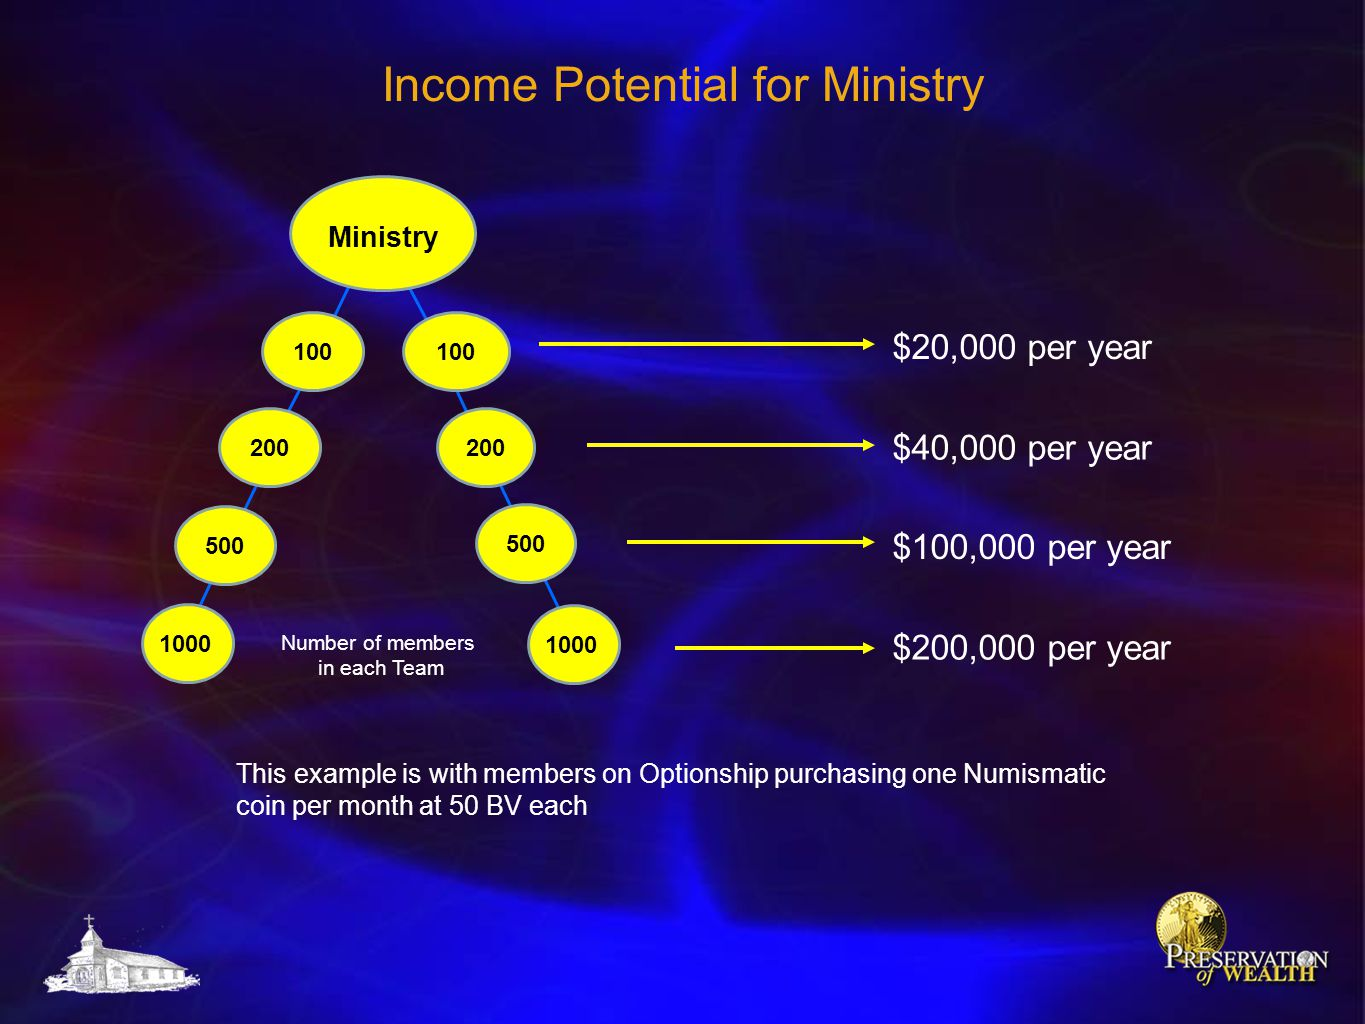 Income Potential for Ministry